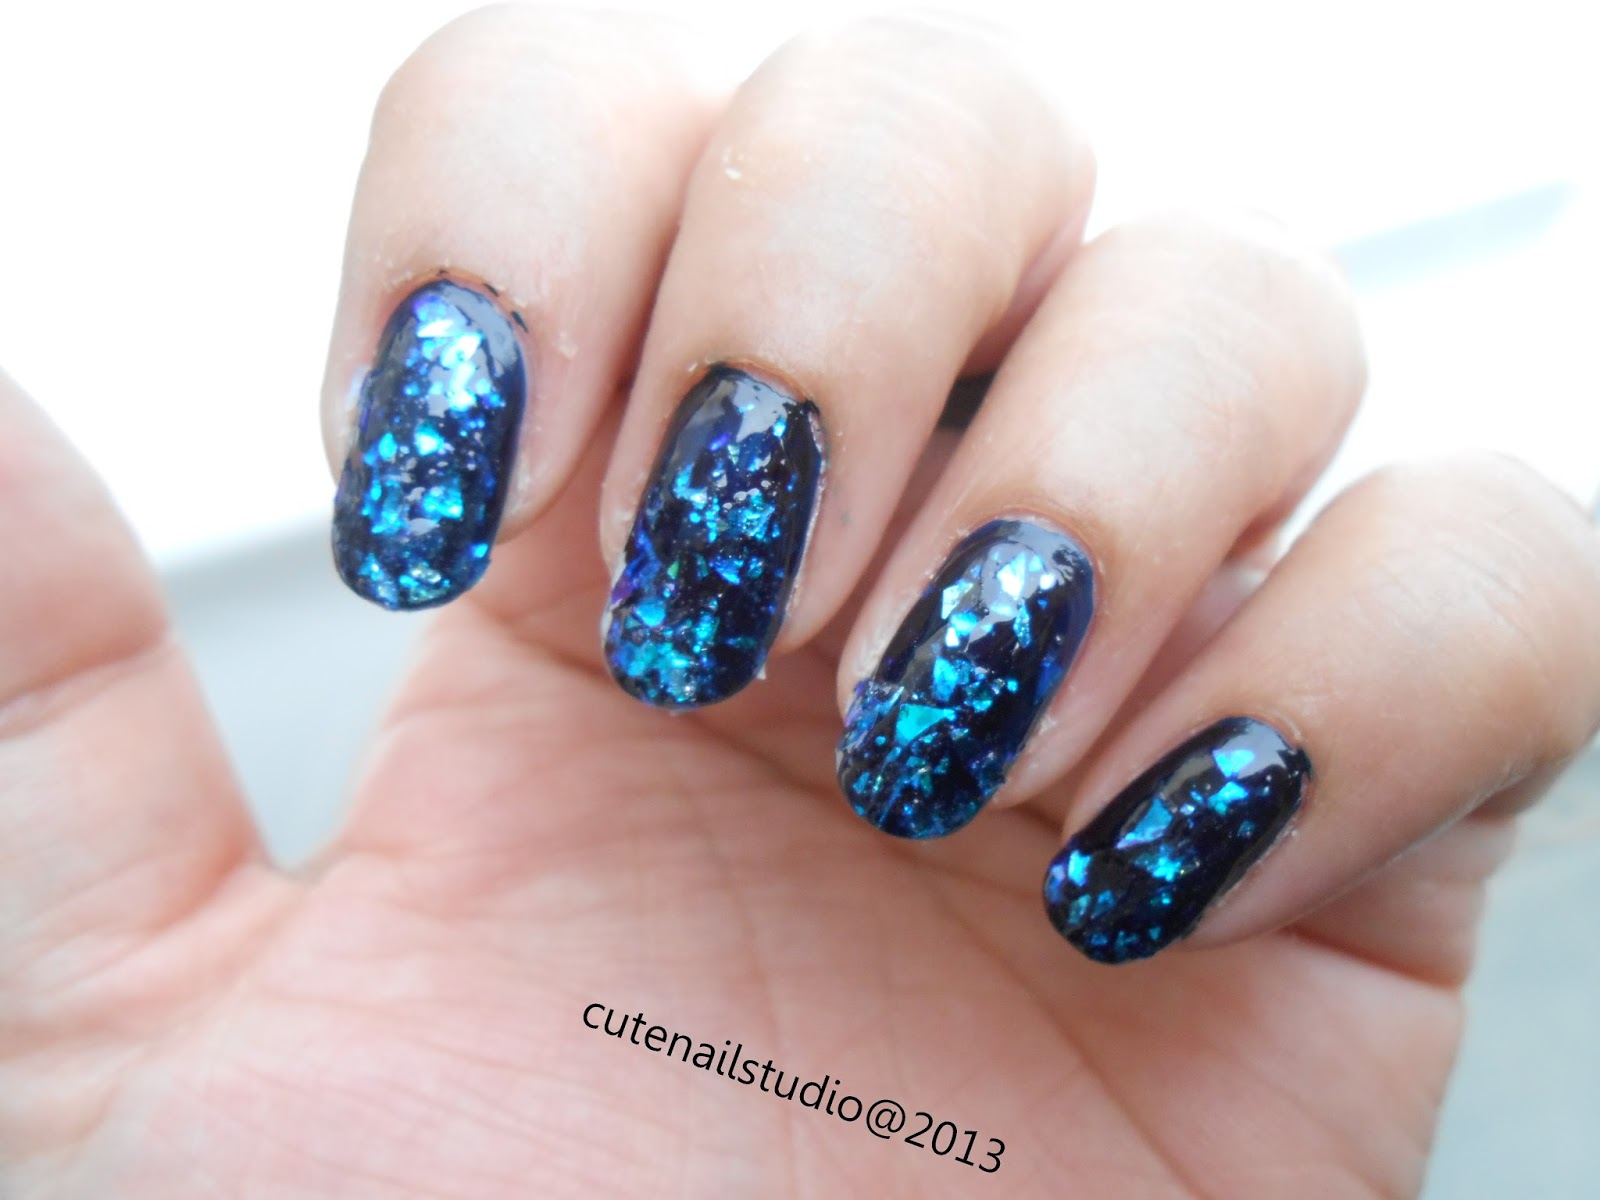 Cute nails: Revlon Moon Candy Galactic review and swatches